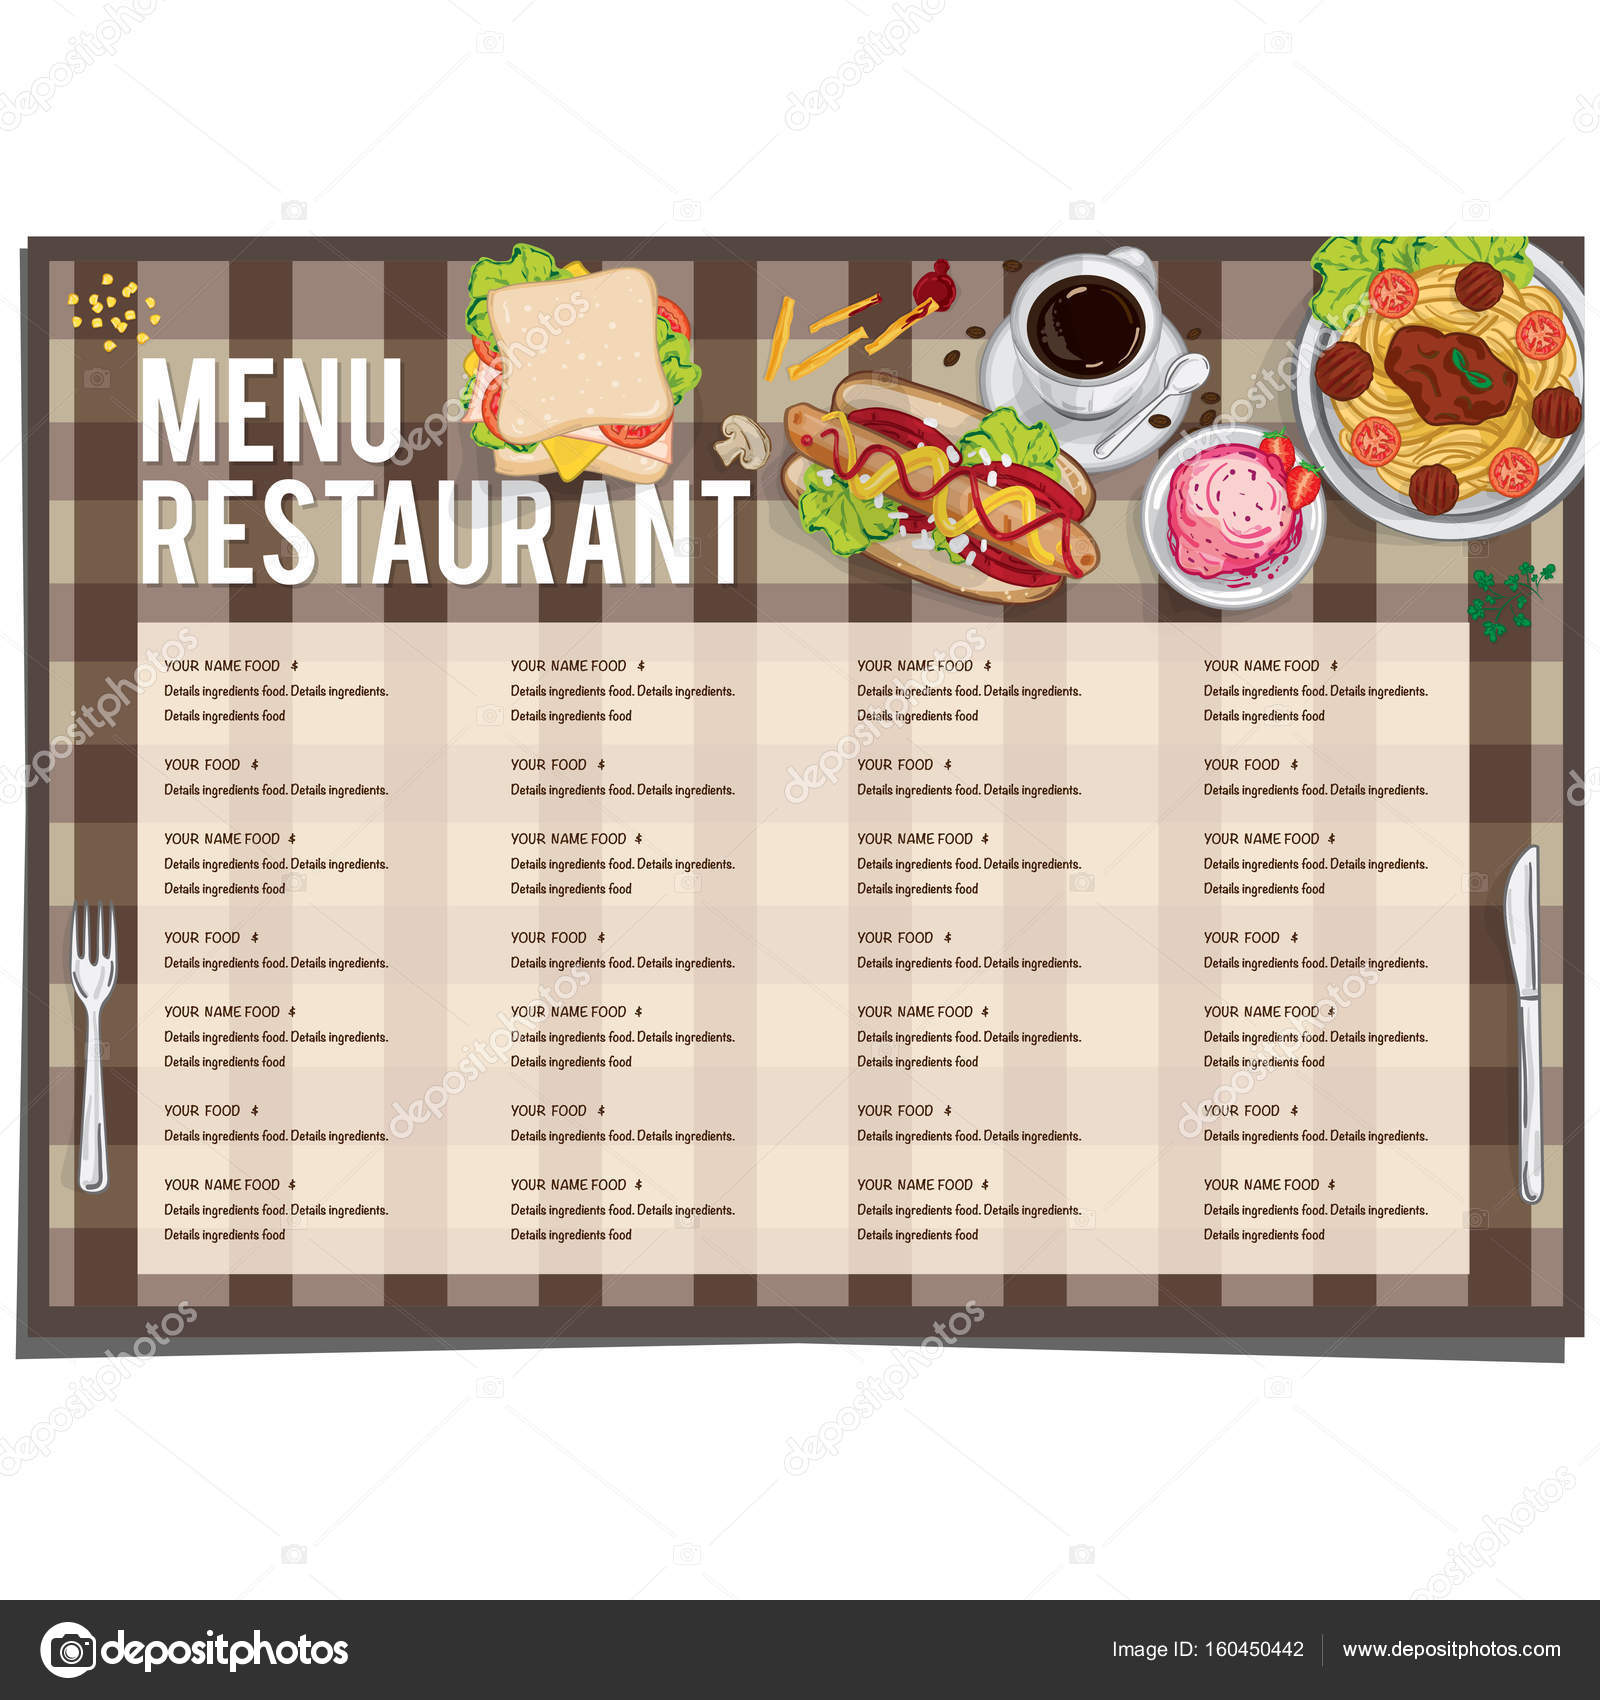 Dorable menu restaurant template gallery resume ideas for Restaurant layout templates